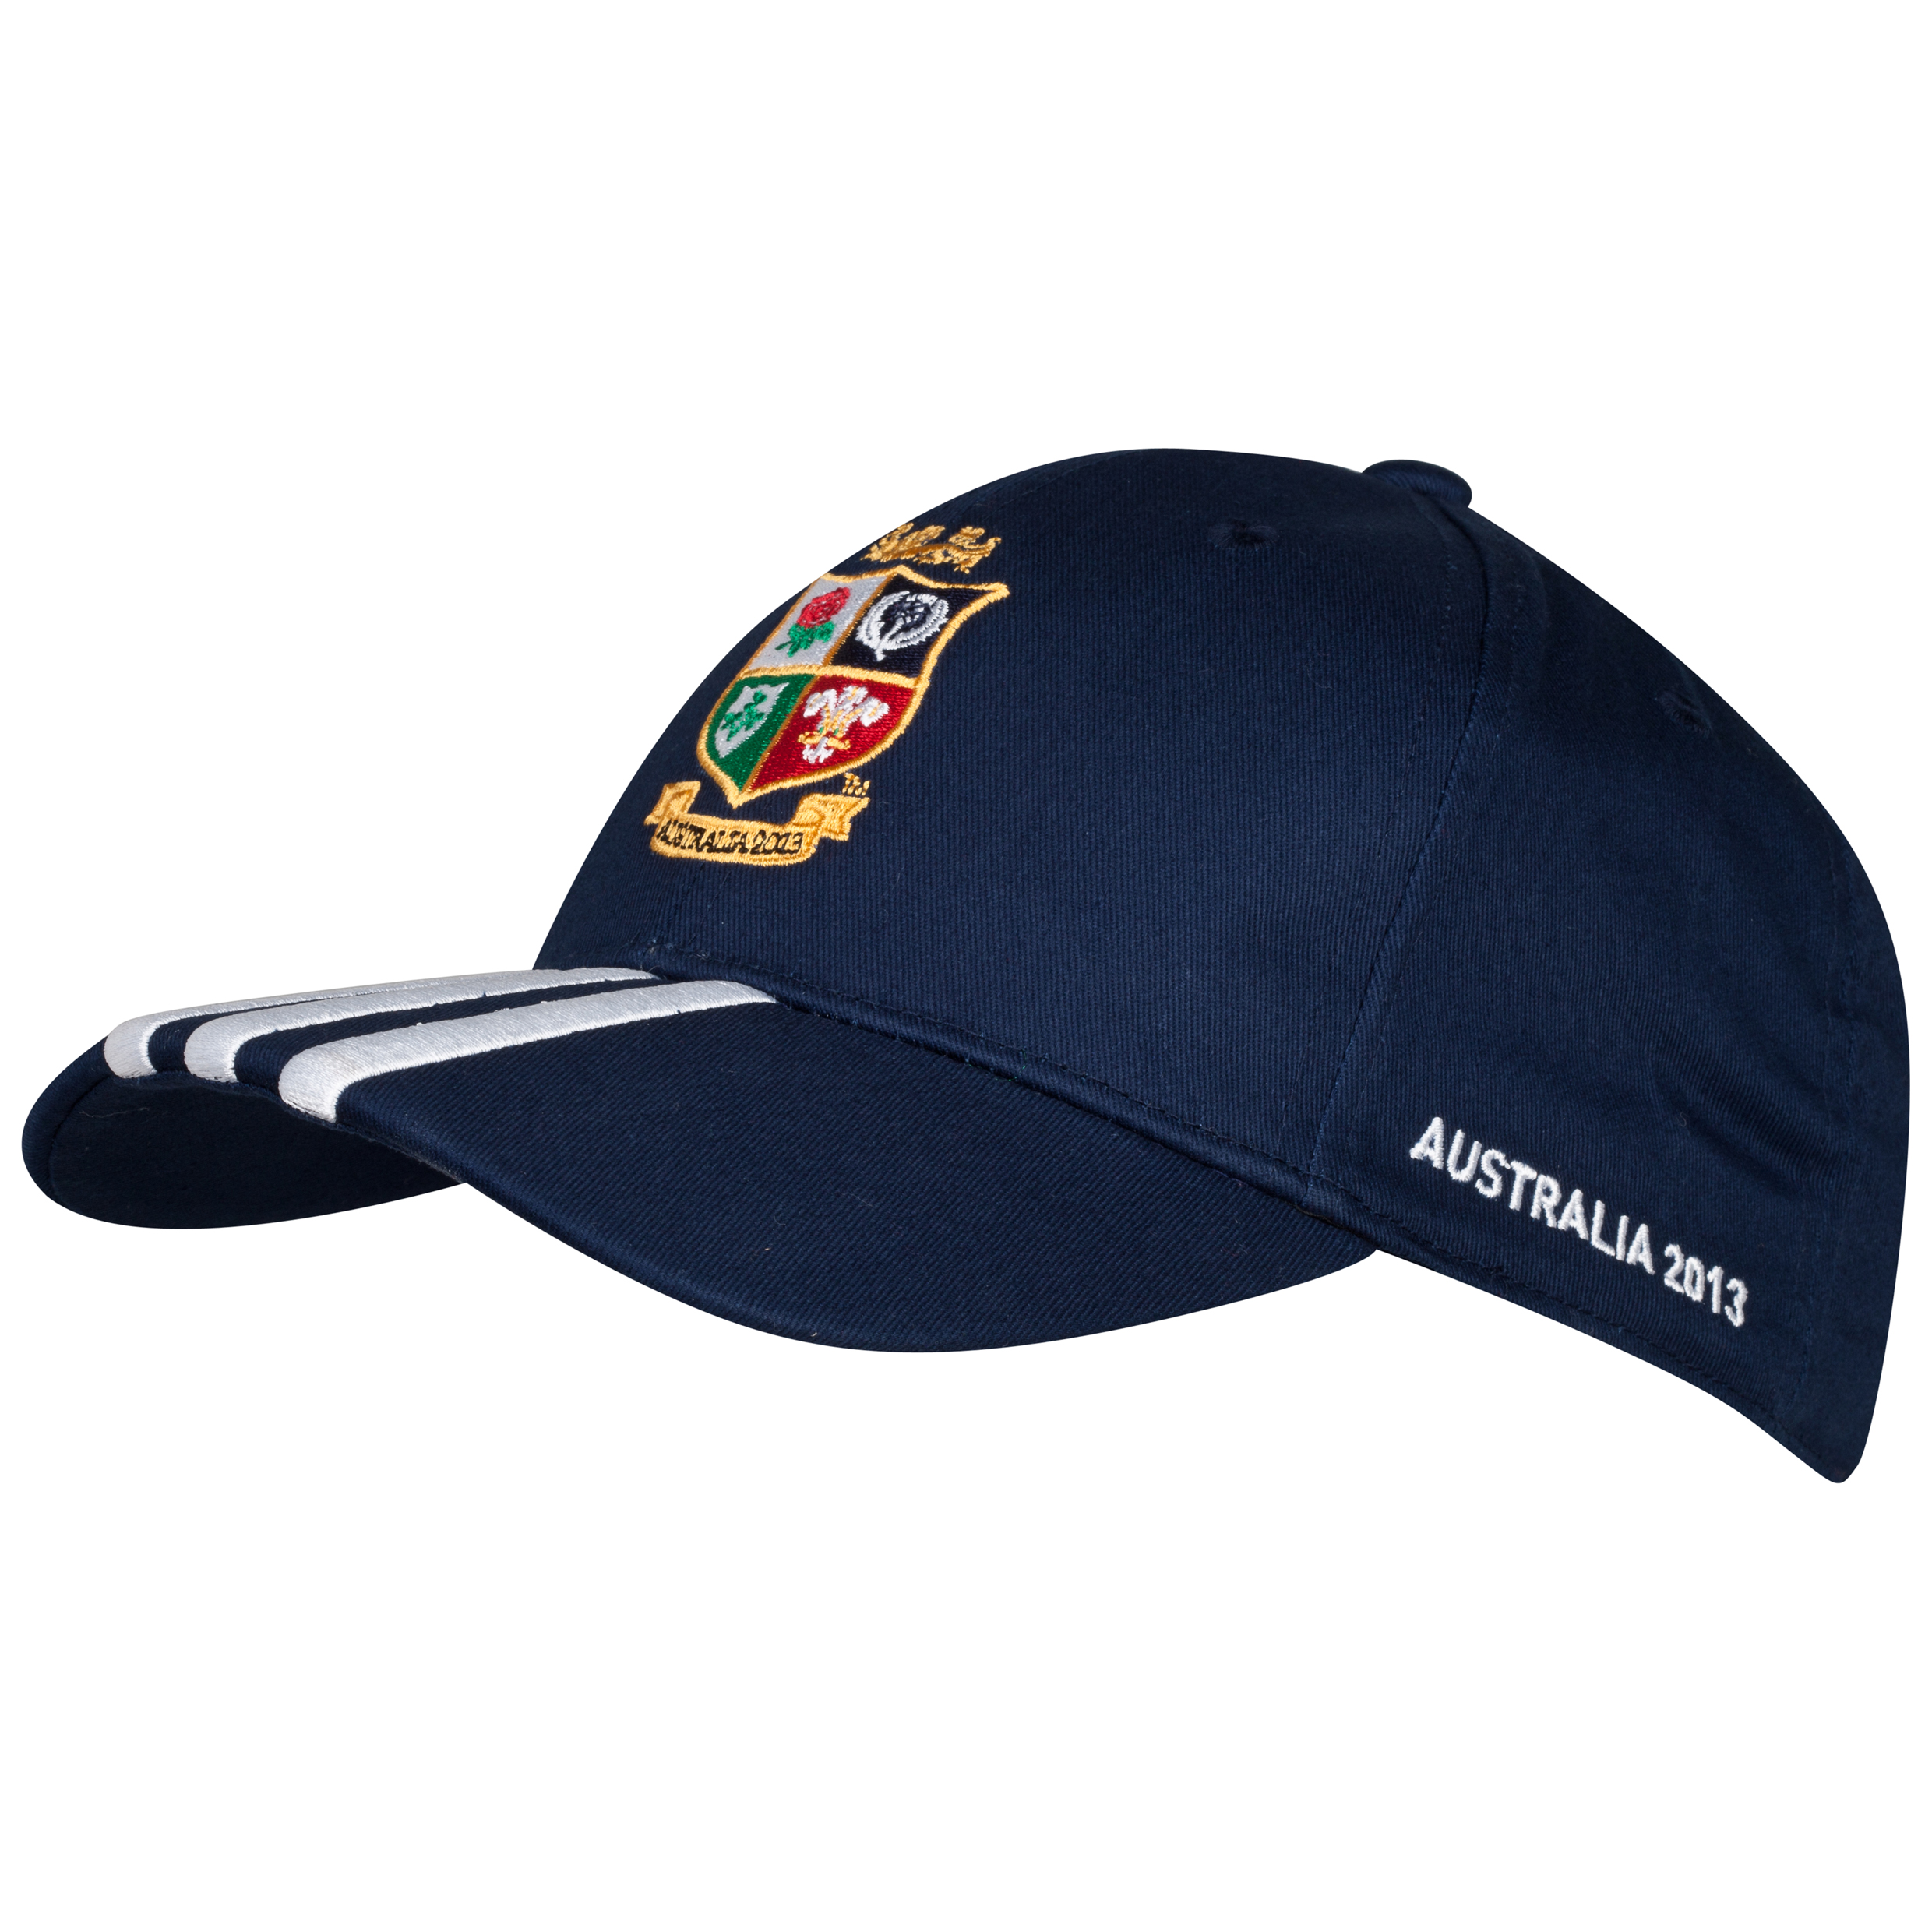 Adidas British and Irish Lions 3 Stripe Cap - Collegiate Navy/University Red